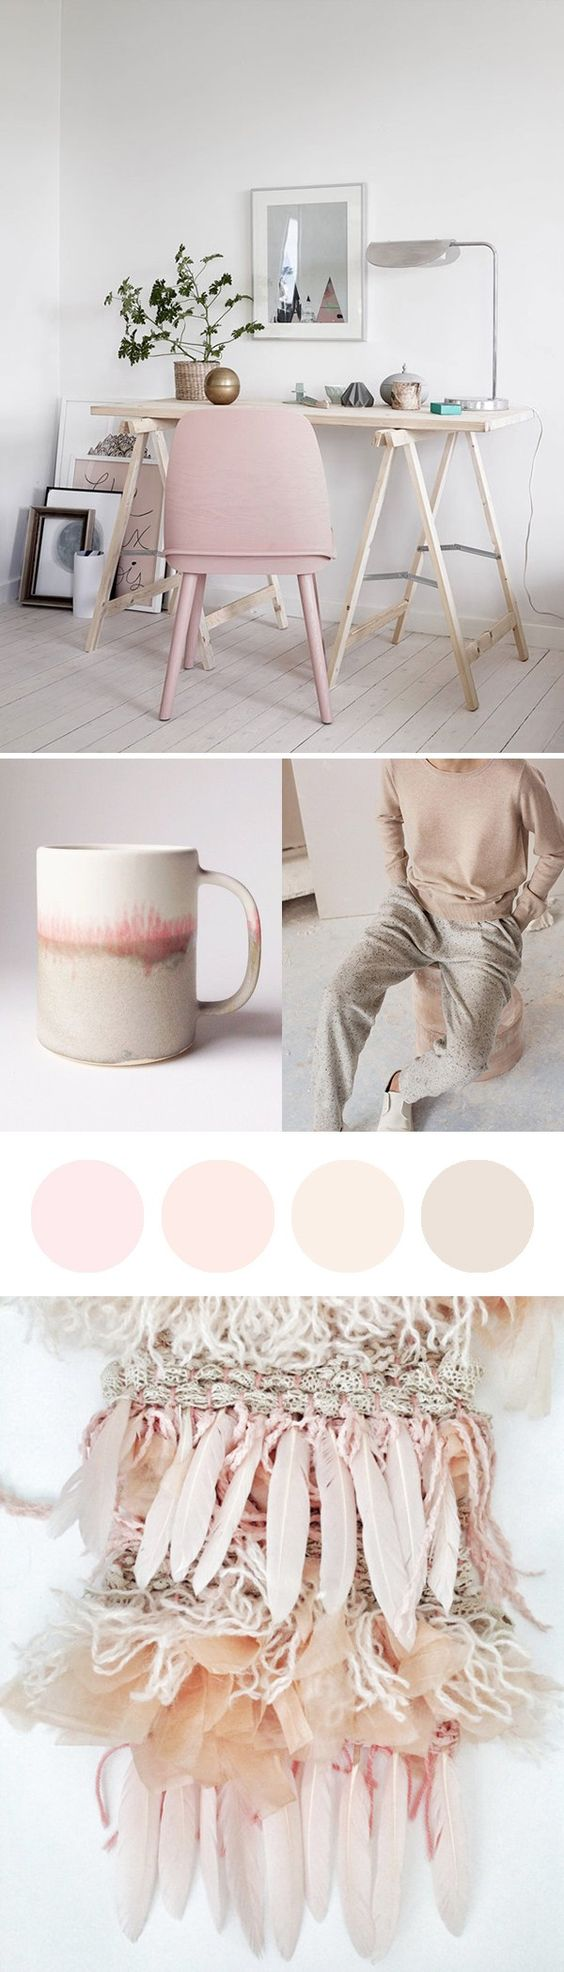 Beautiful pastel pinks moodboard - inspired by the Pantone Colour of the Year 2016